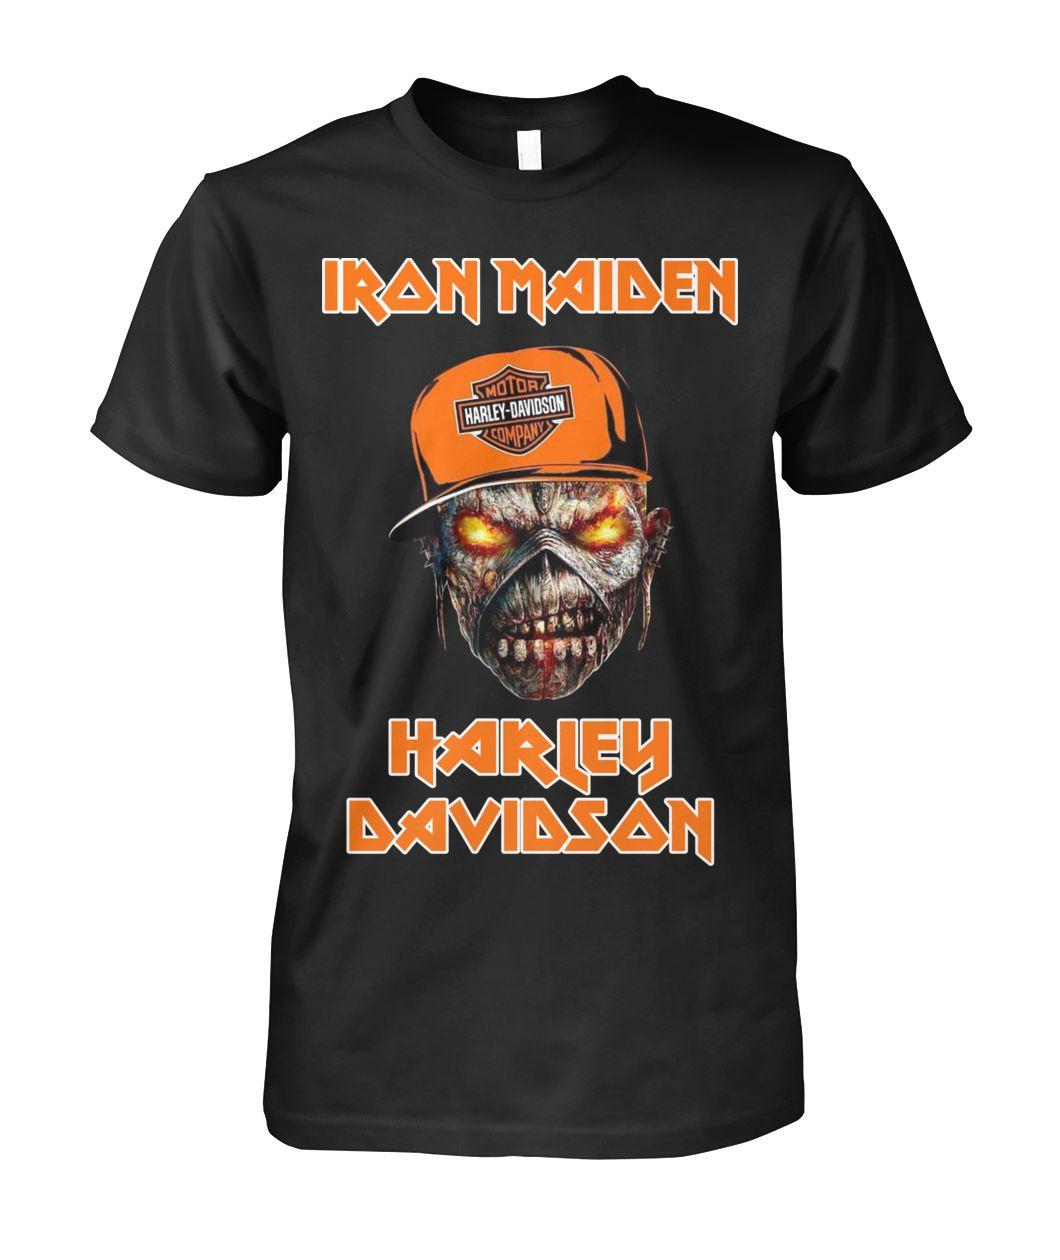 Official Iron Maiden Harley Davidson skull Shirt